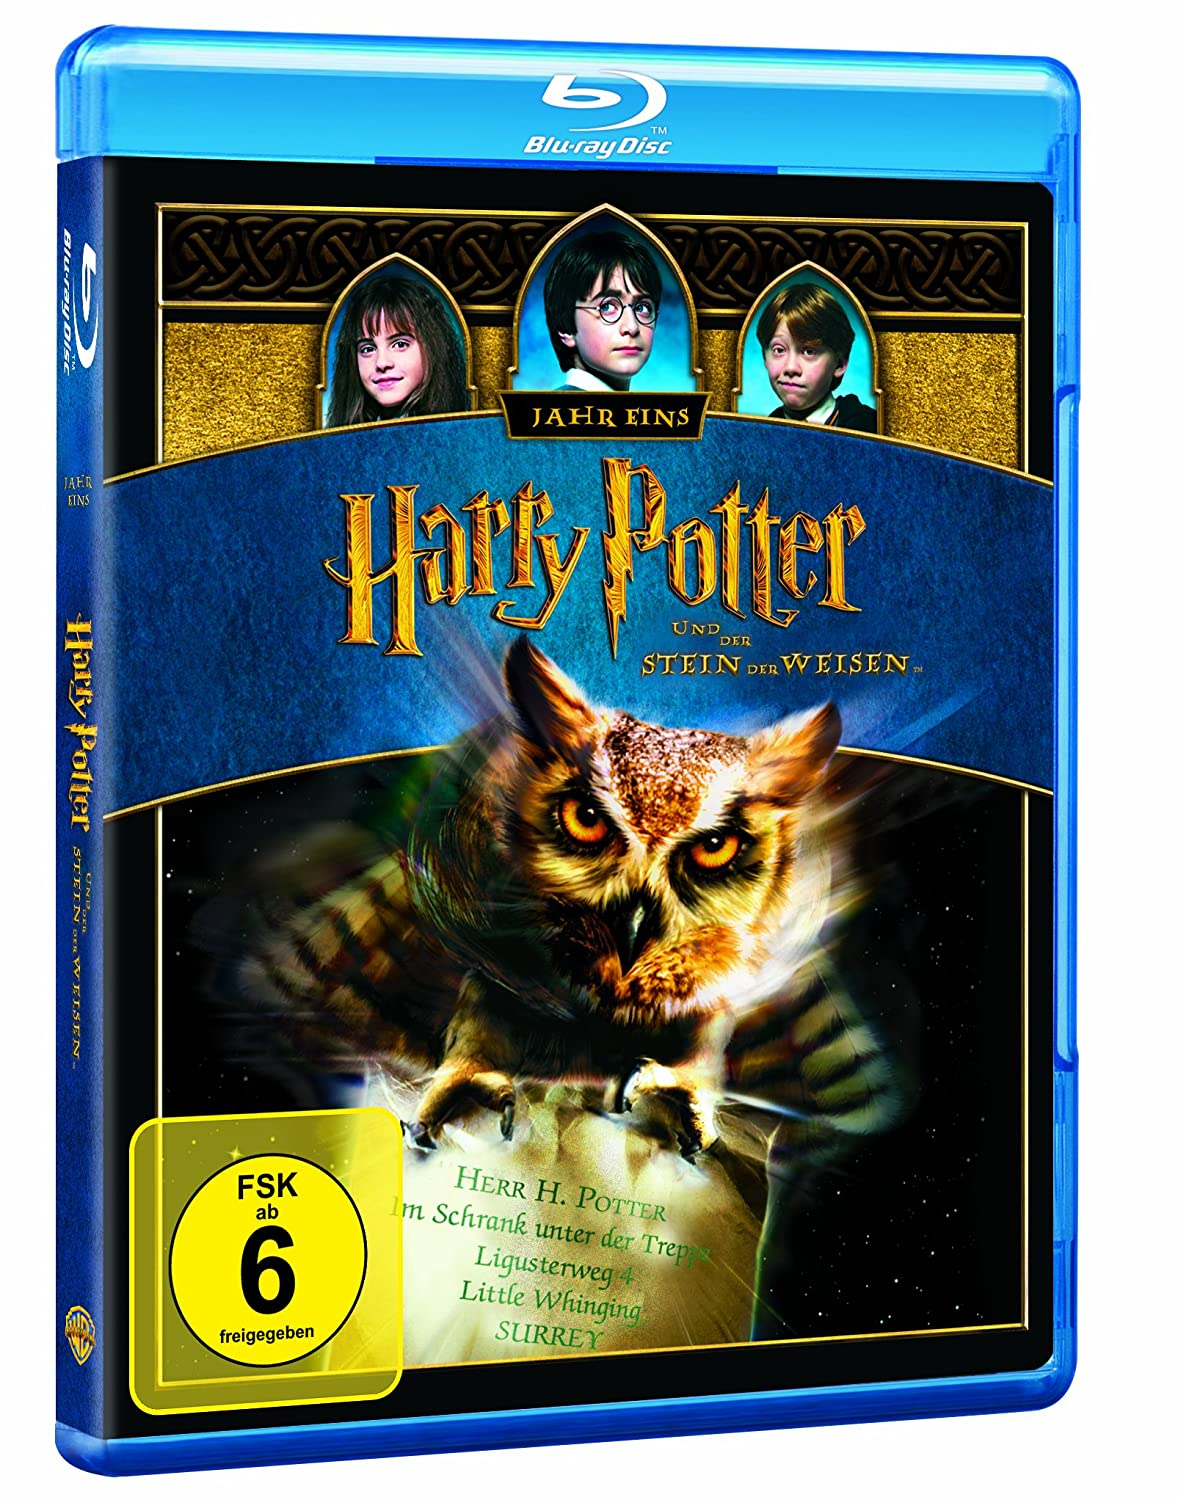 Amazon.com: Harry Potter und der Stein der Weisen: Movies & TV